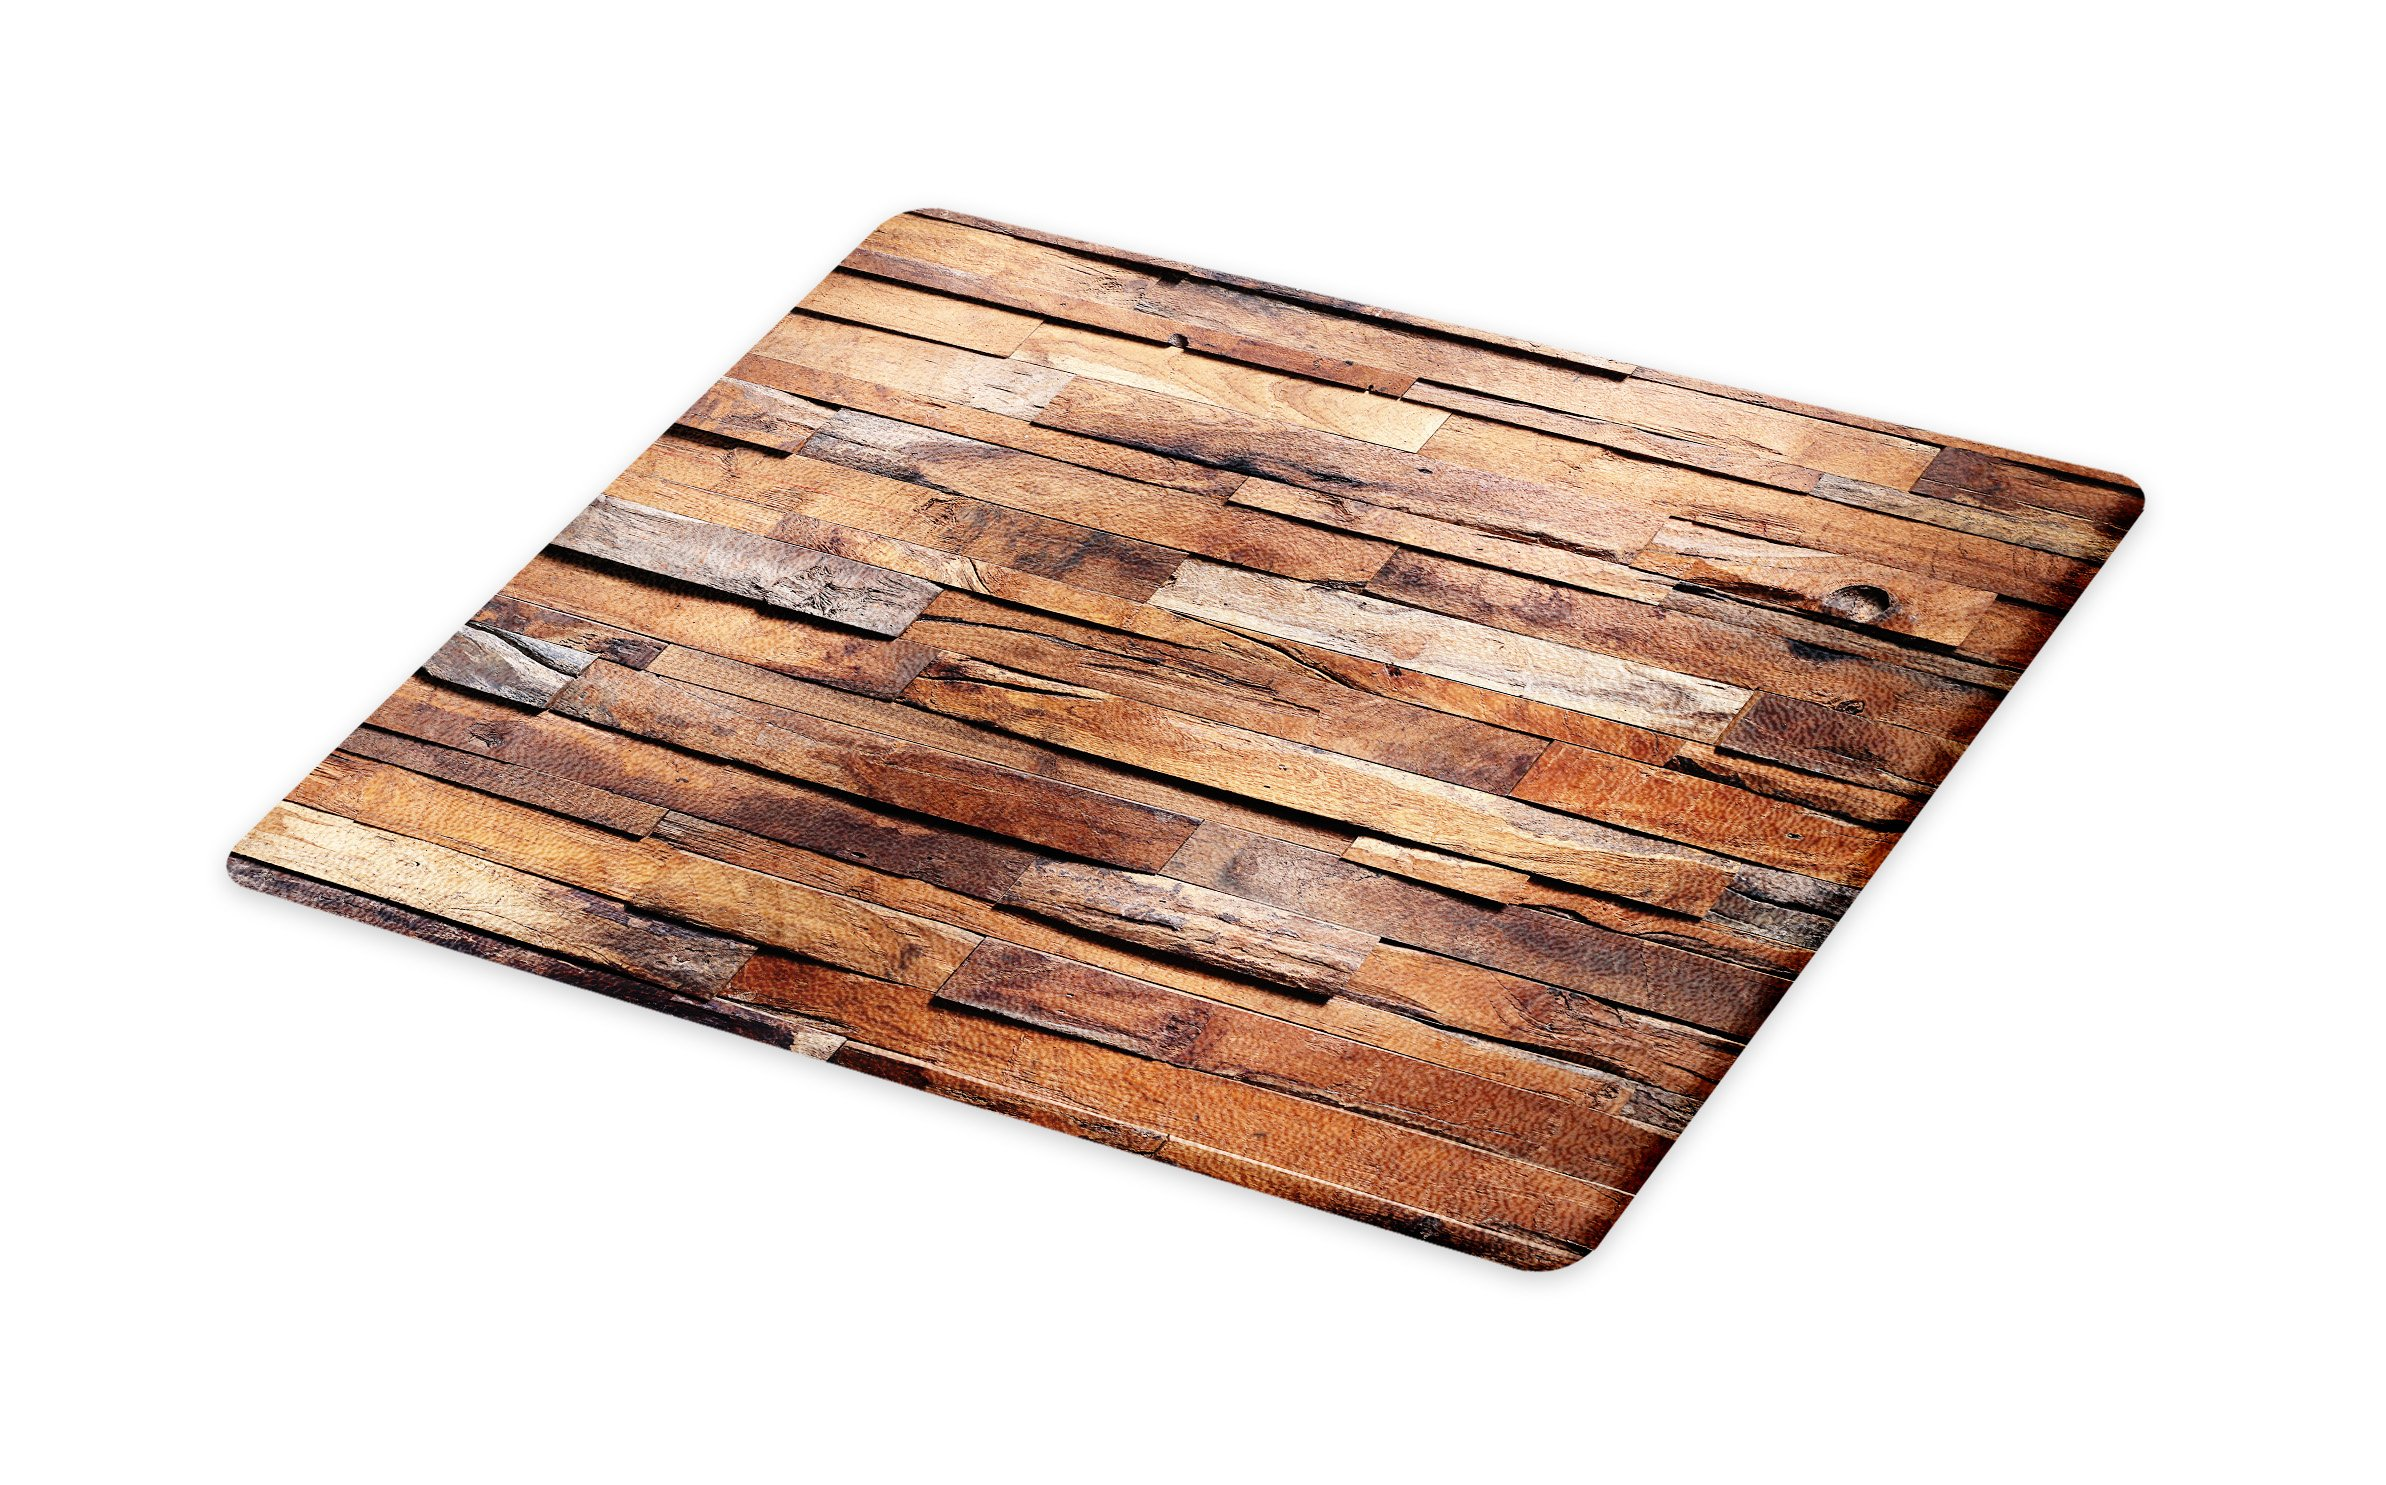 Lunarable Wooden Cutting Board, Old Ruined Rustic Planks in Horizontal Order Construction Country House Picture, Decorative Tempered Glass Cutting and Serving Board, Large Size, Cinnamon Umber